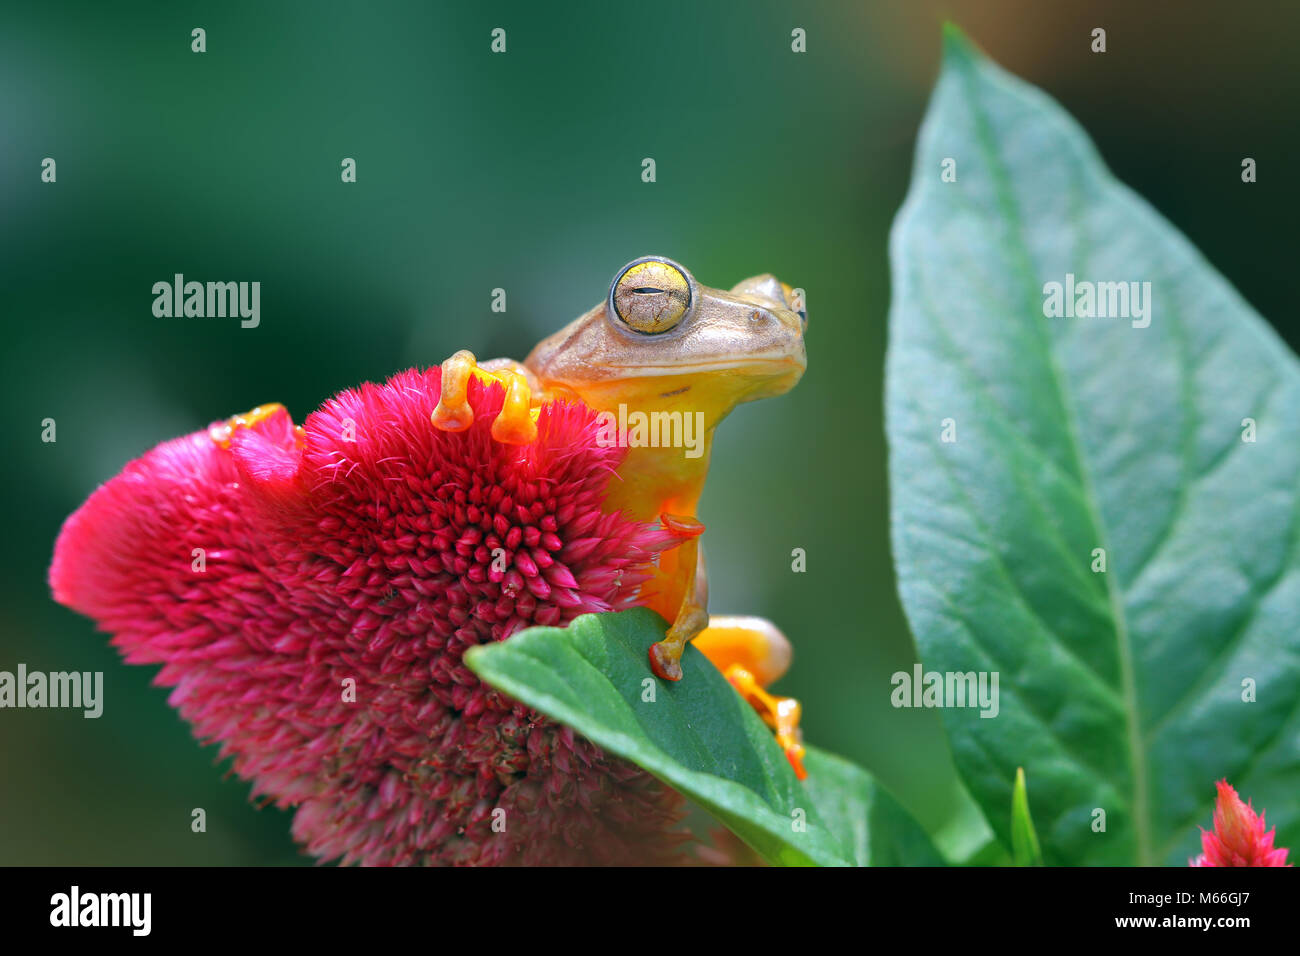 Harlequin tree frog on a flower, Indonesia Stock Photo